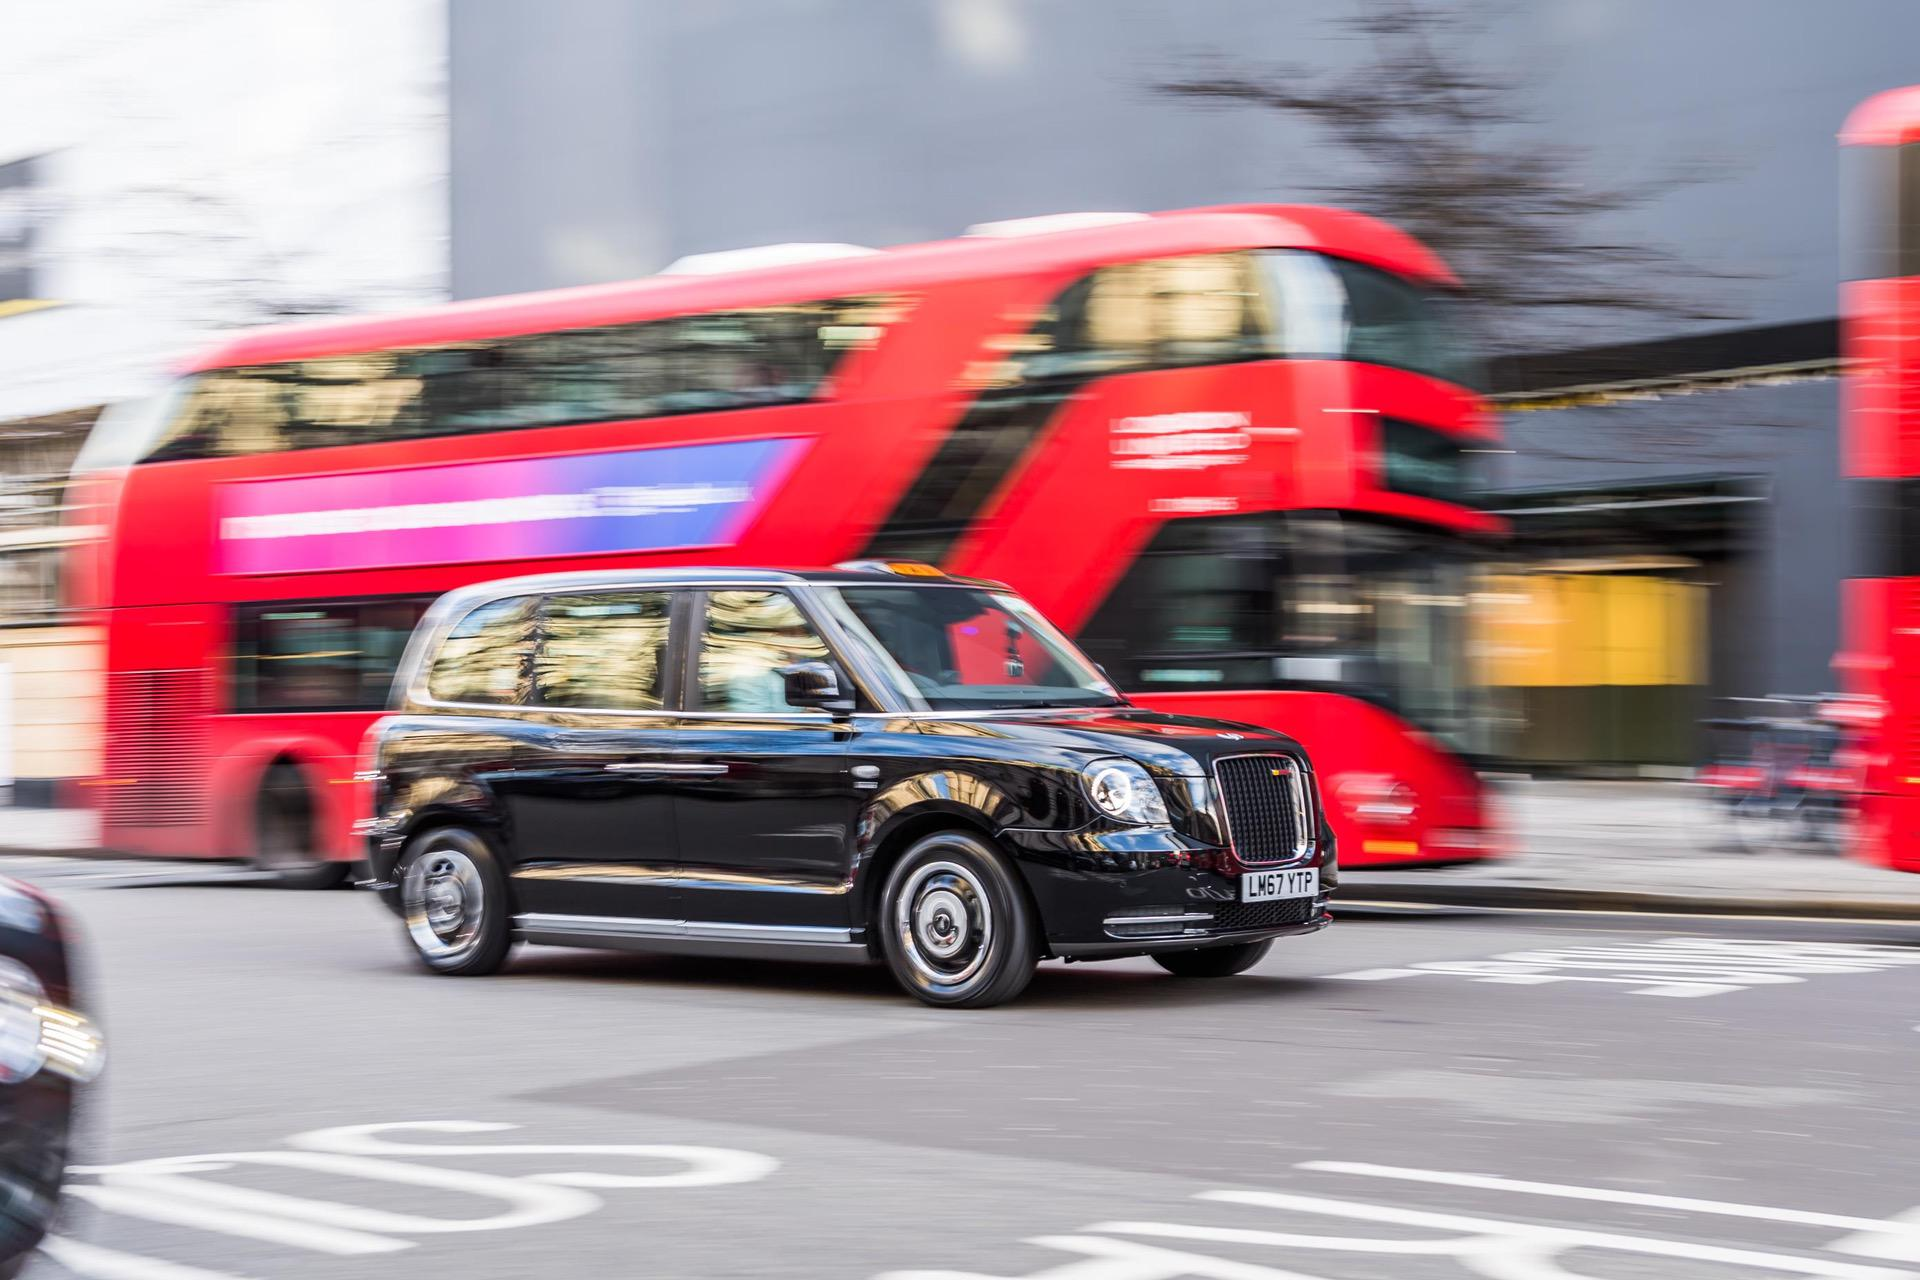 London_Taxi_0005